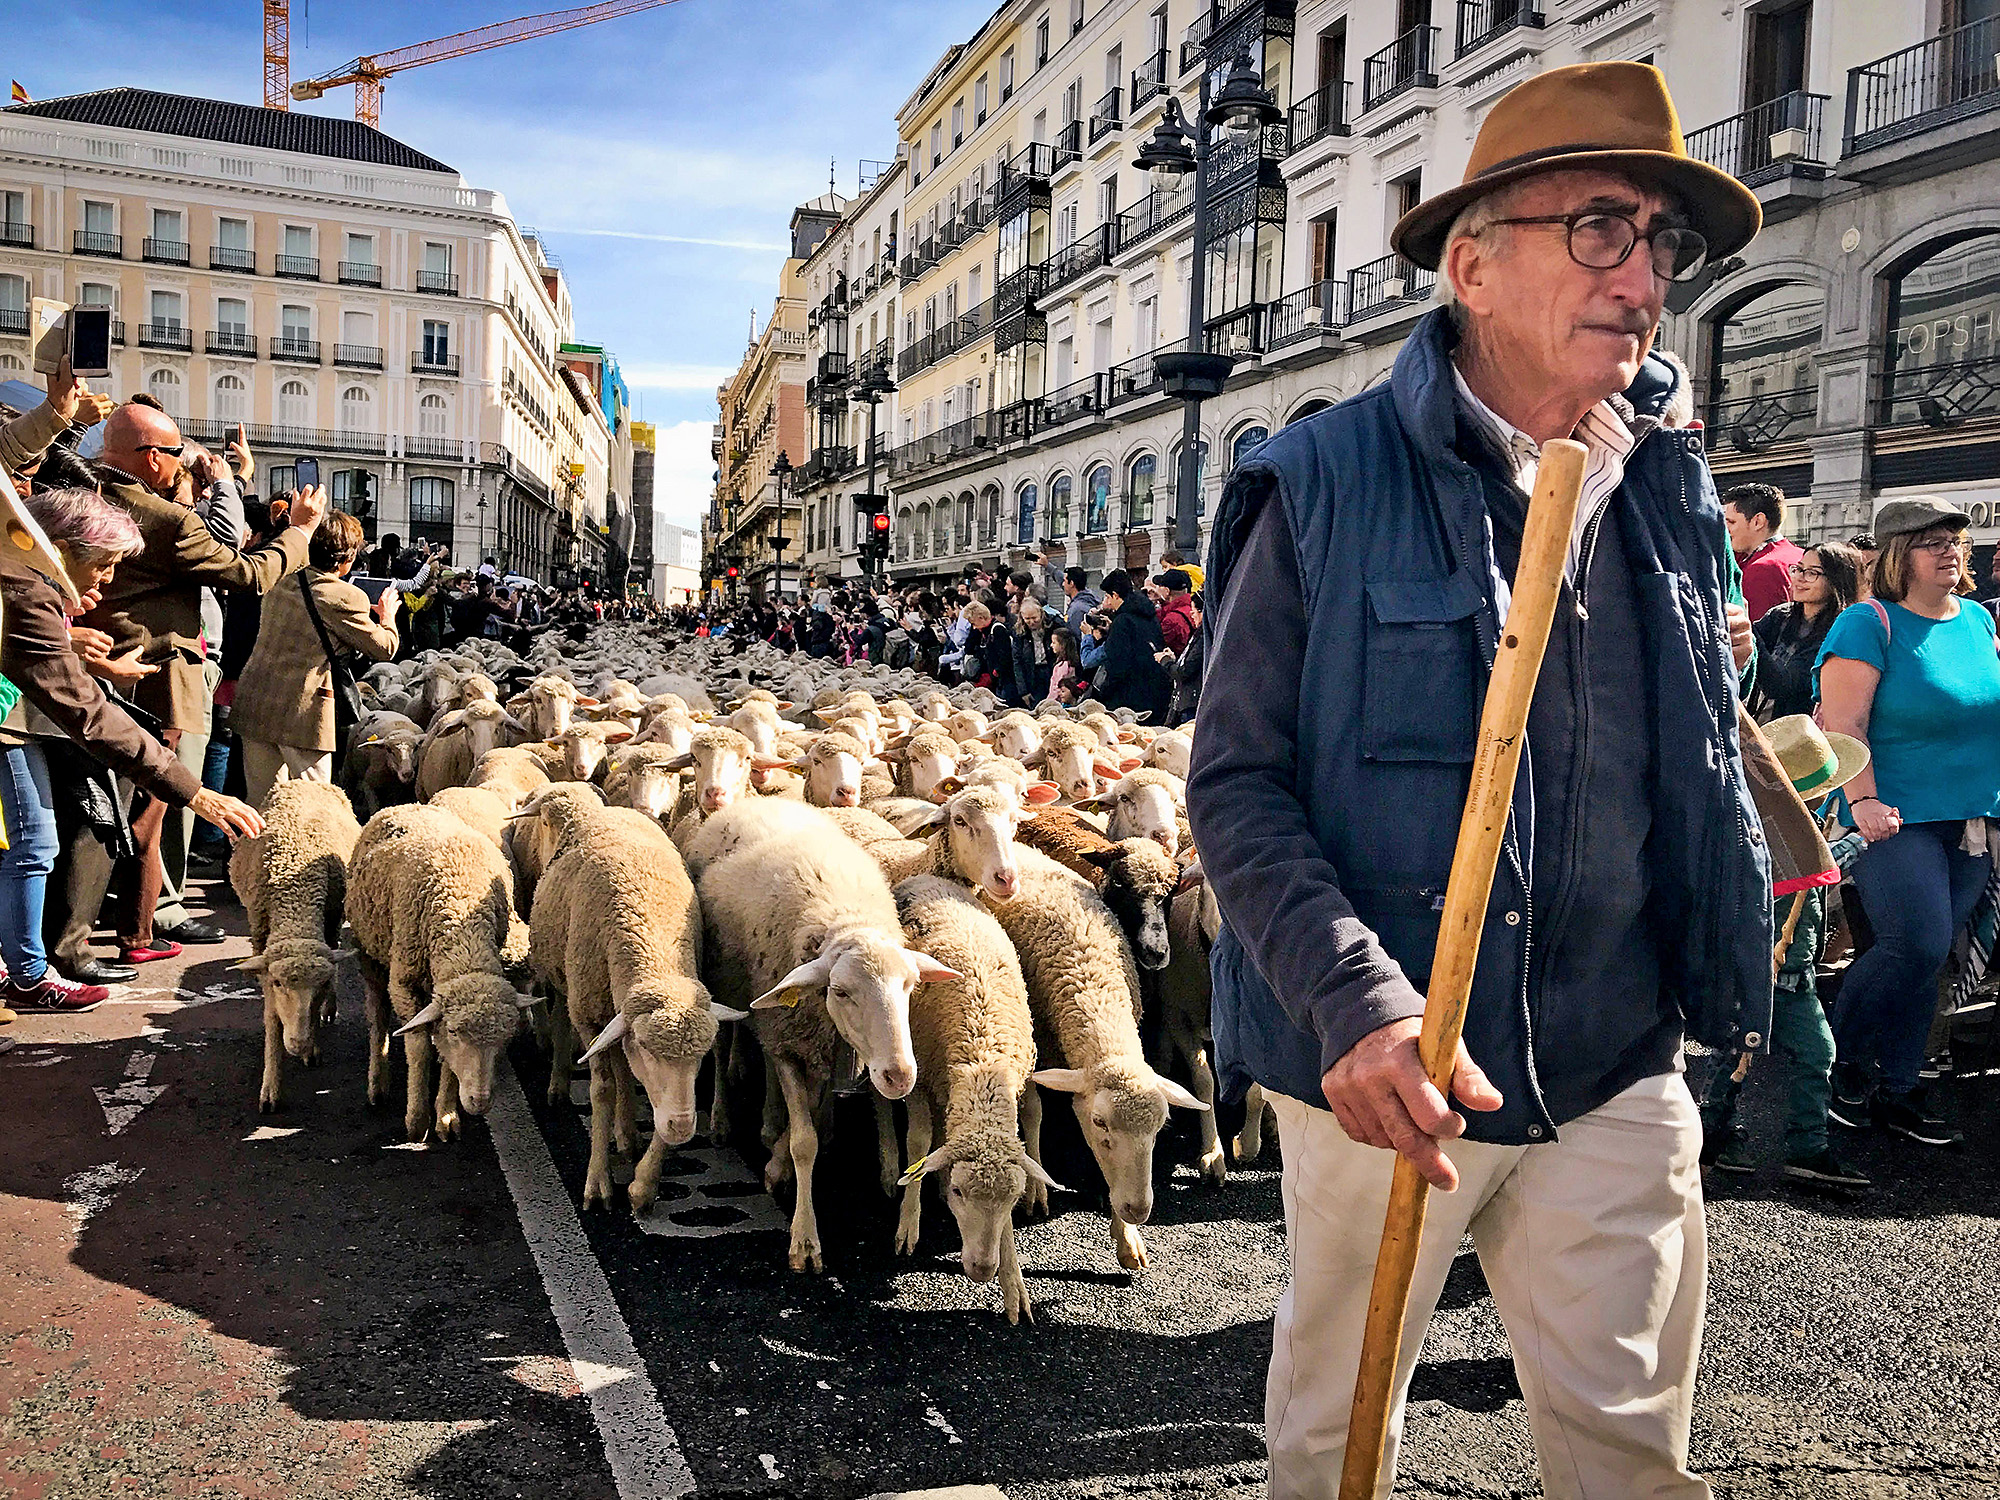 shepherd and his sheep move through streets of Madrid while tourists snap photos